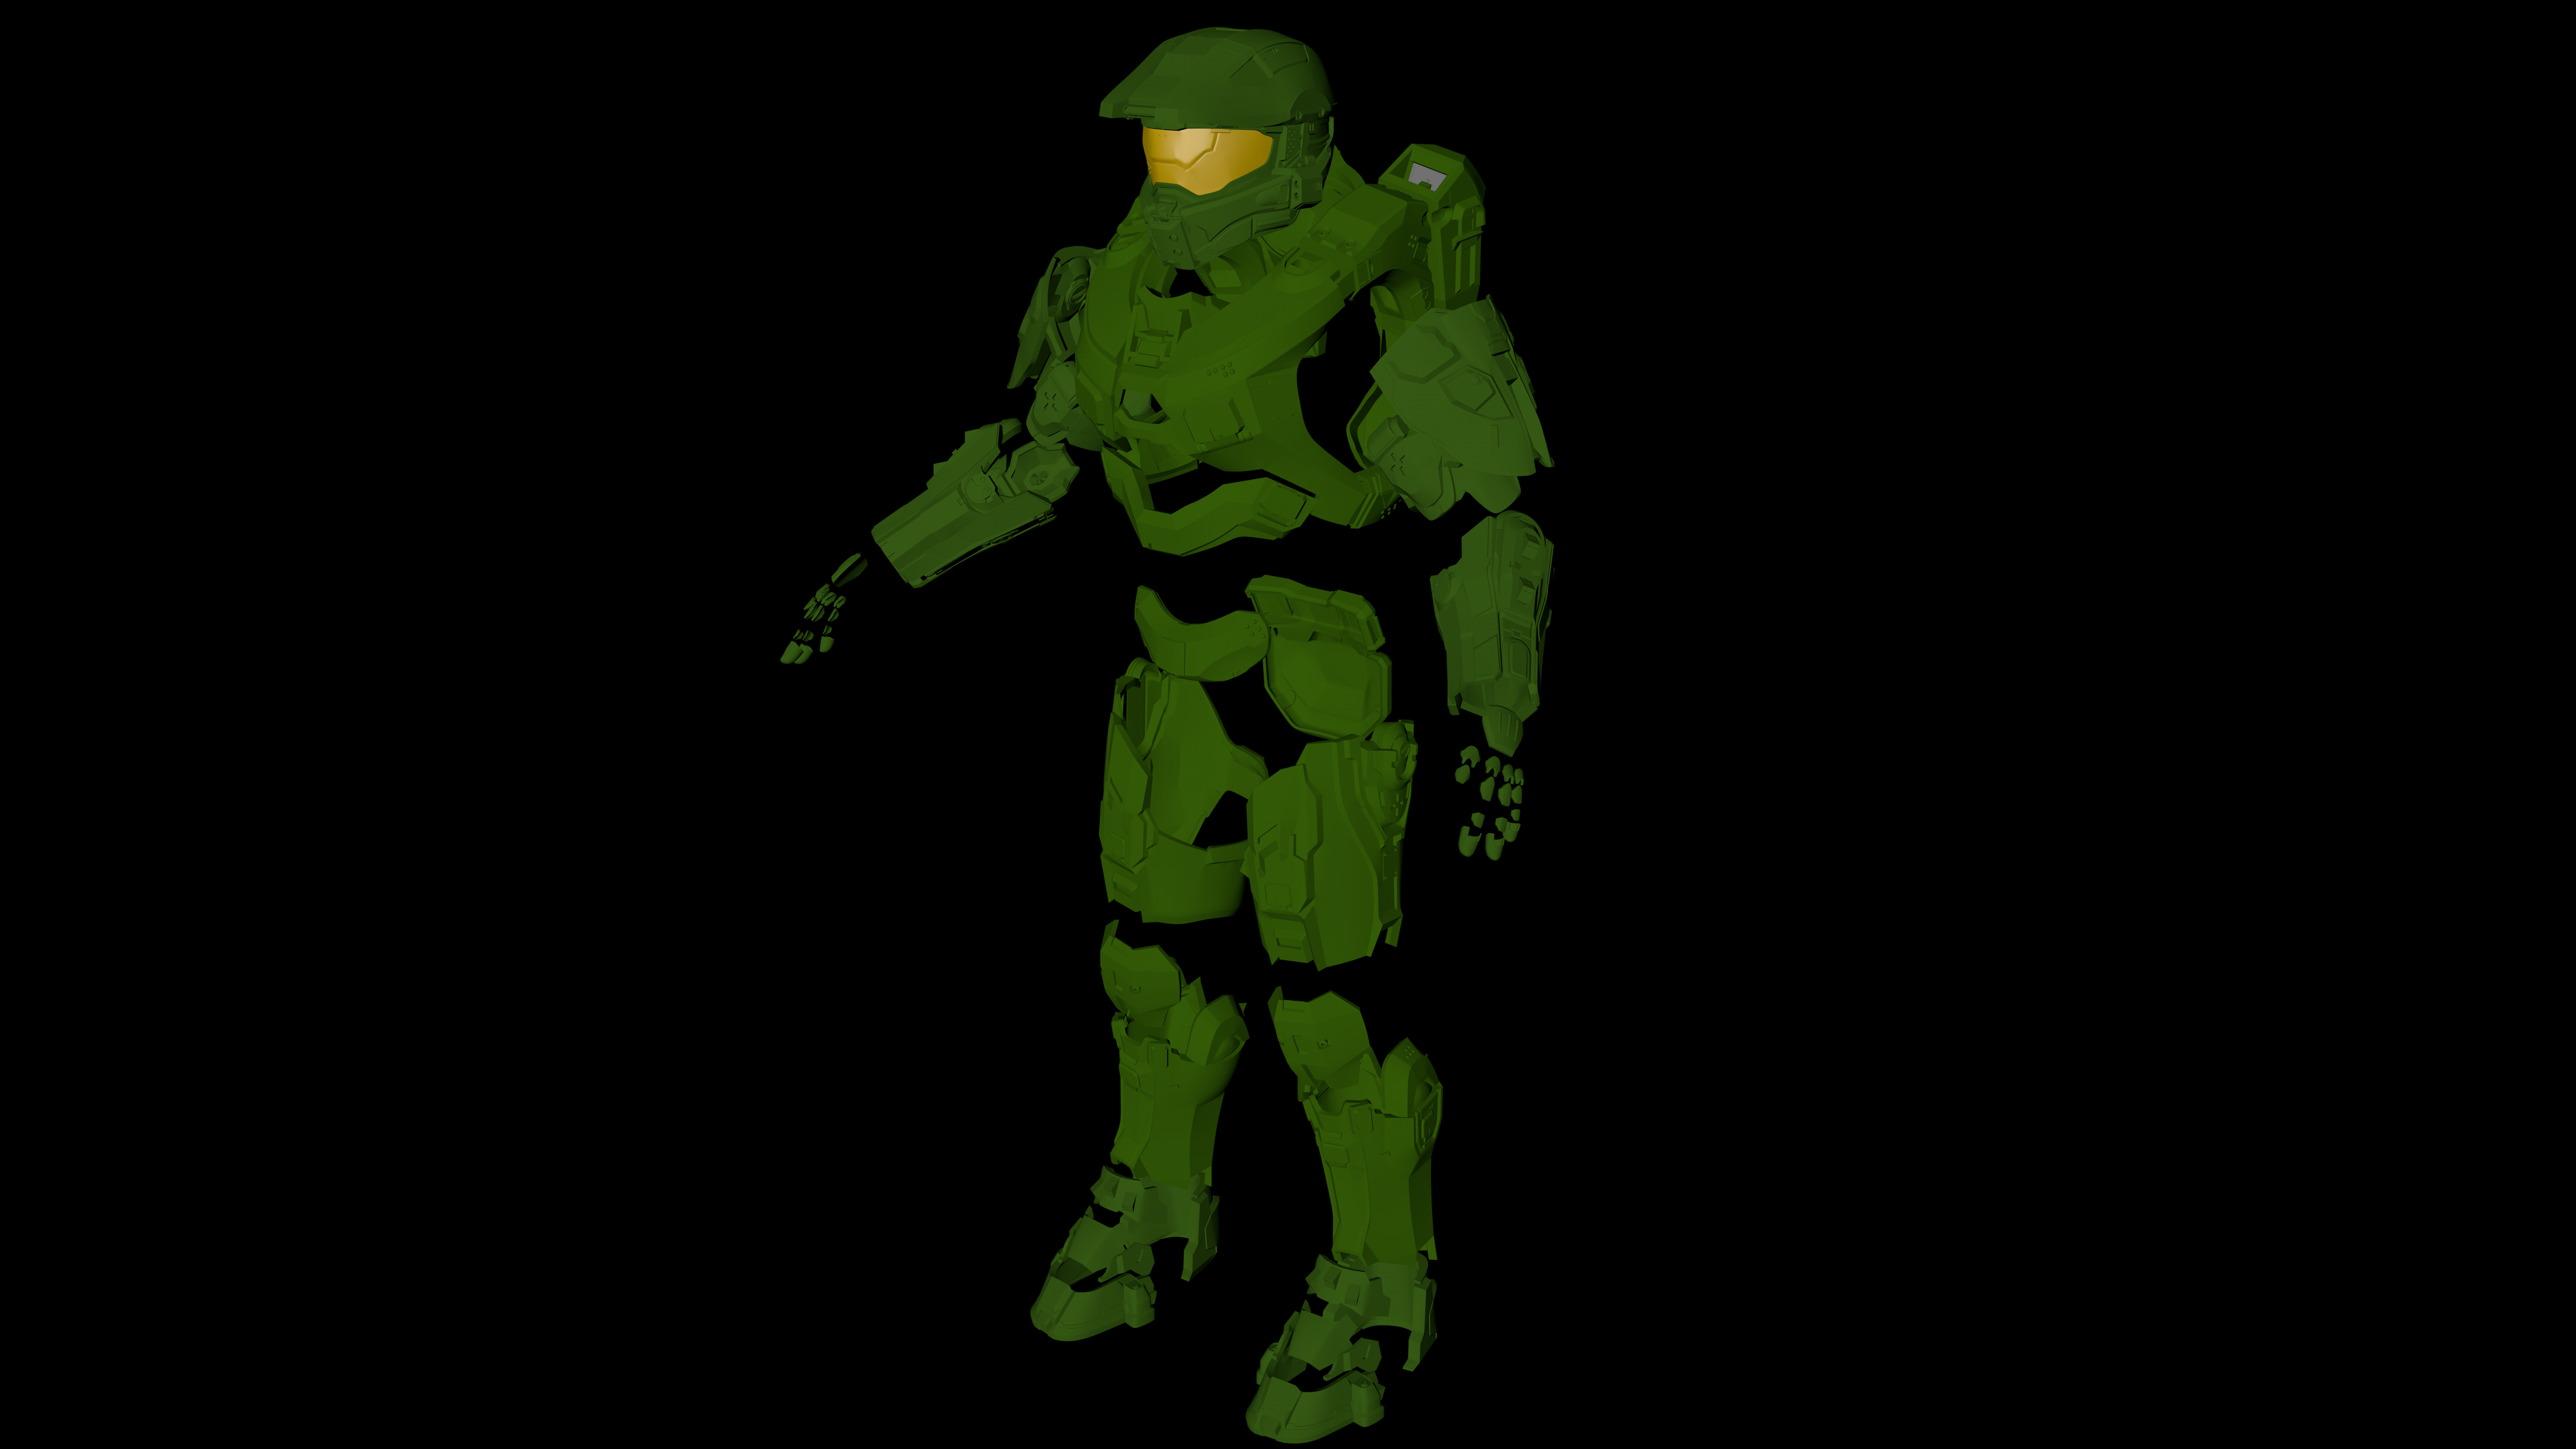 me with armor master chief 4.png